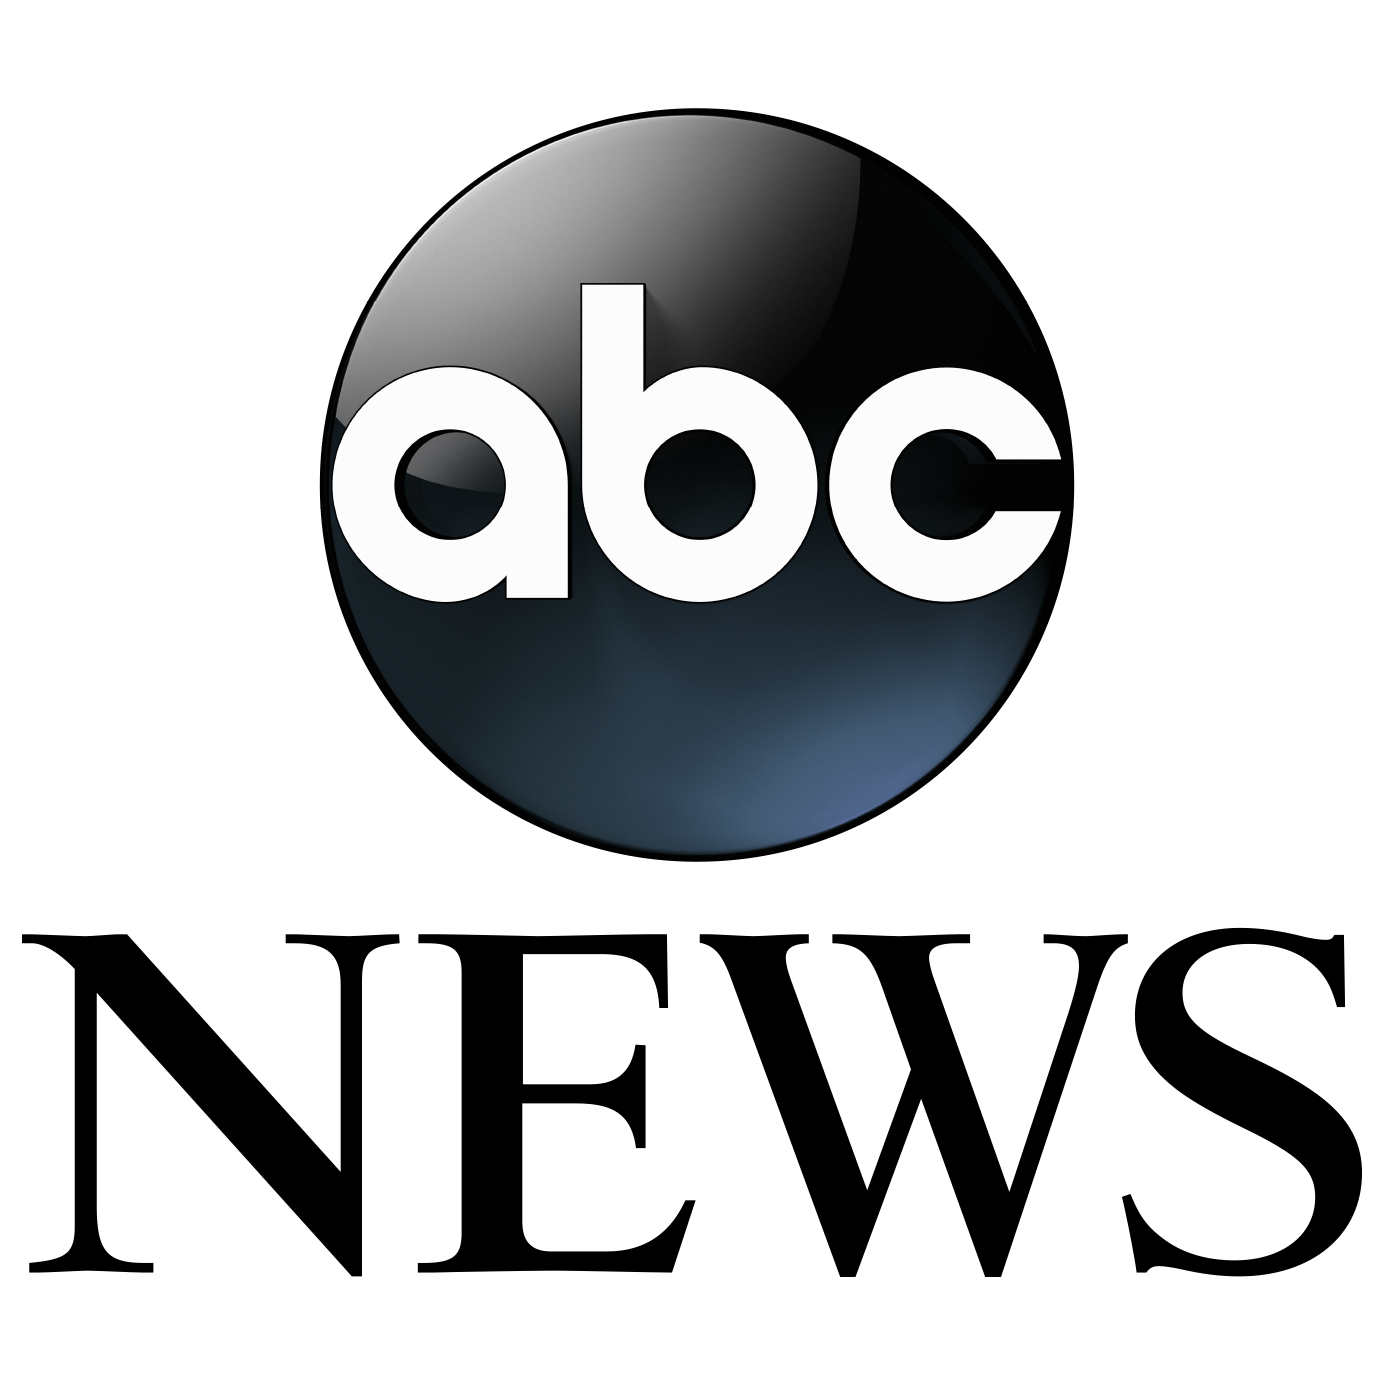 Abc breaking latest headlines. Png national news today jpg transparent